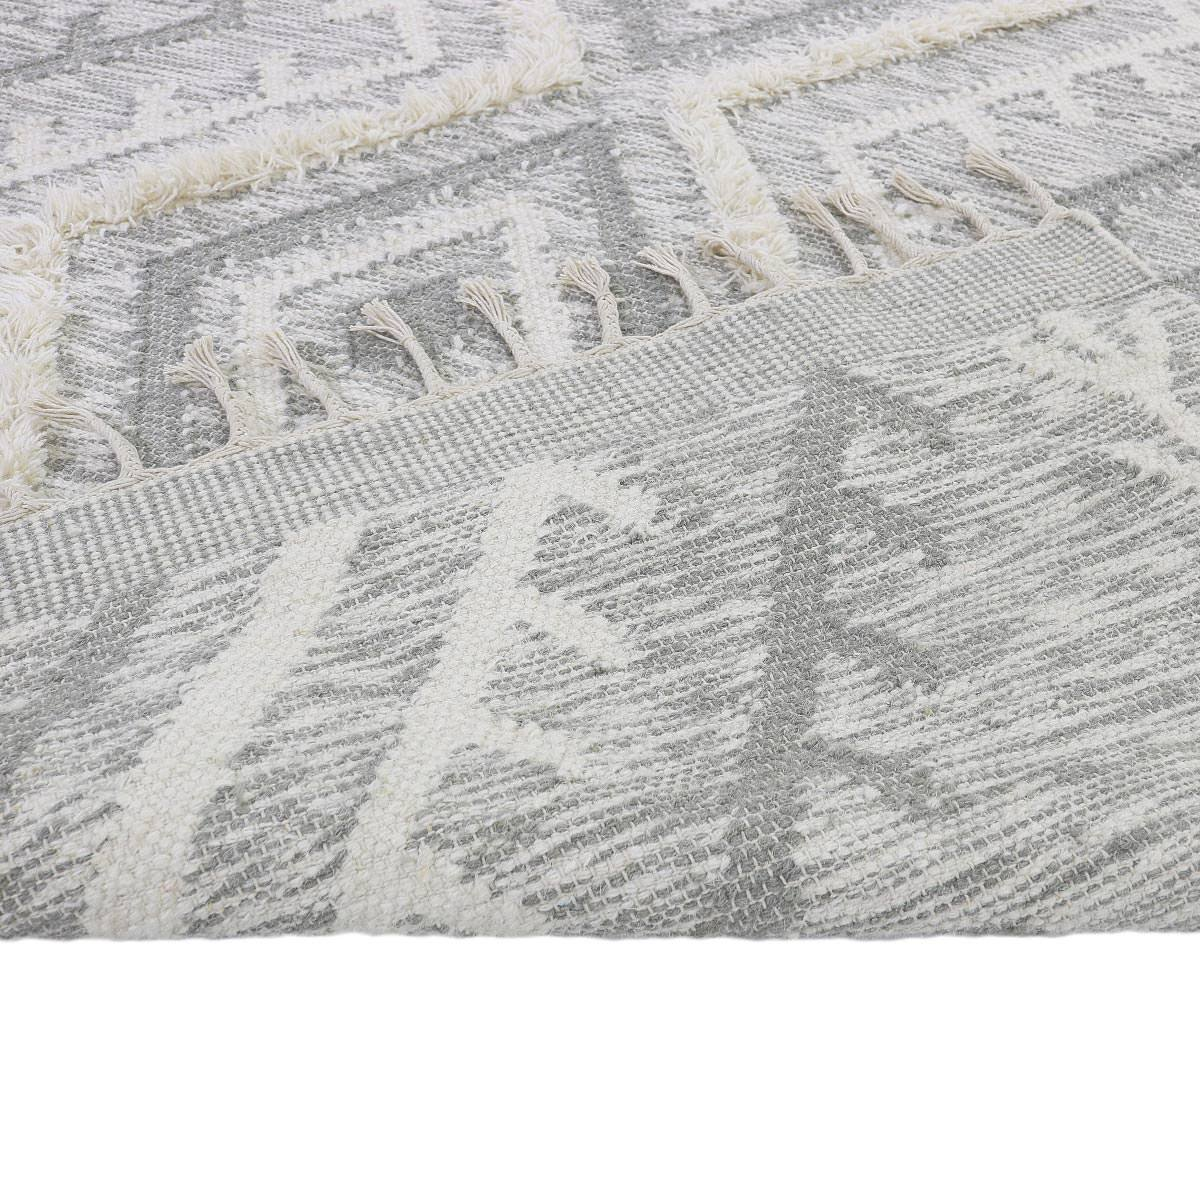 Tangier Rug 05 light grey Runner 3